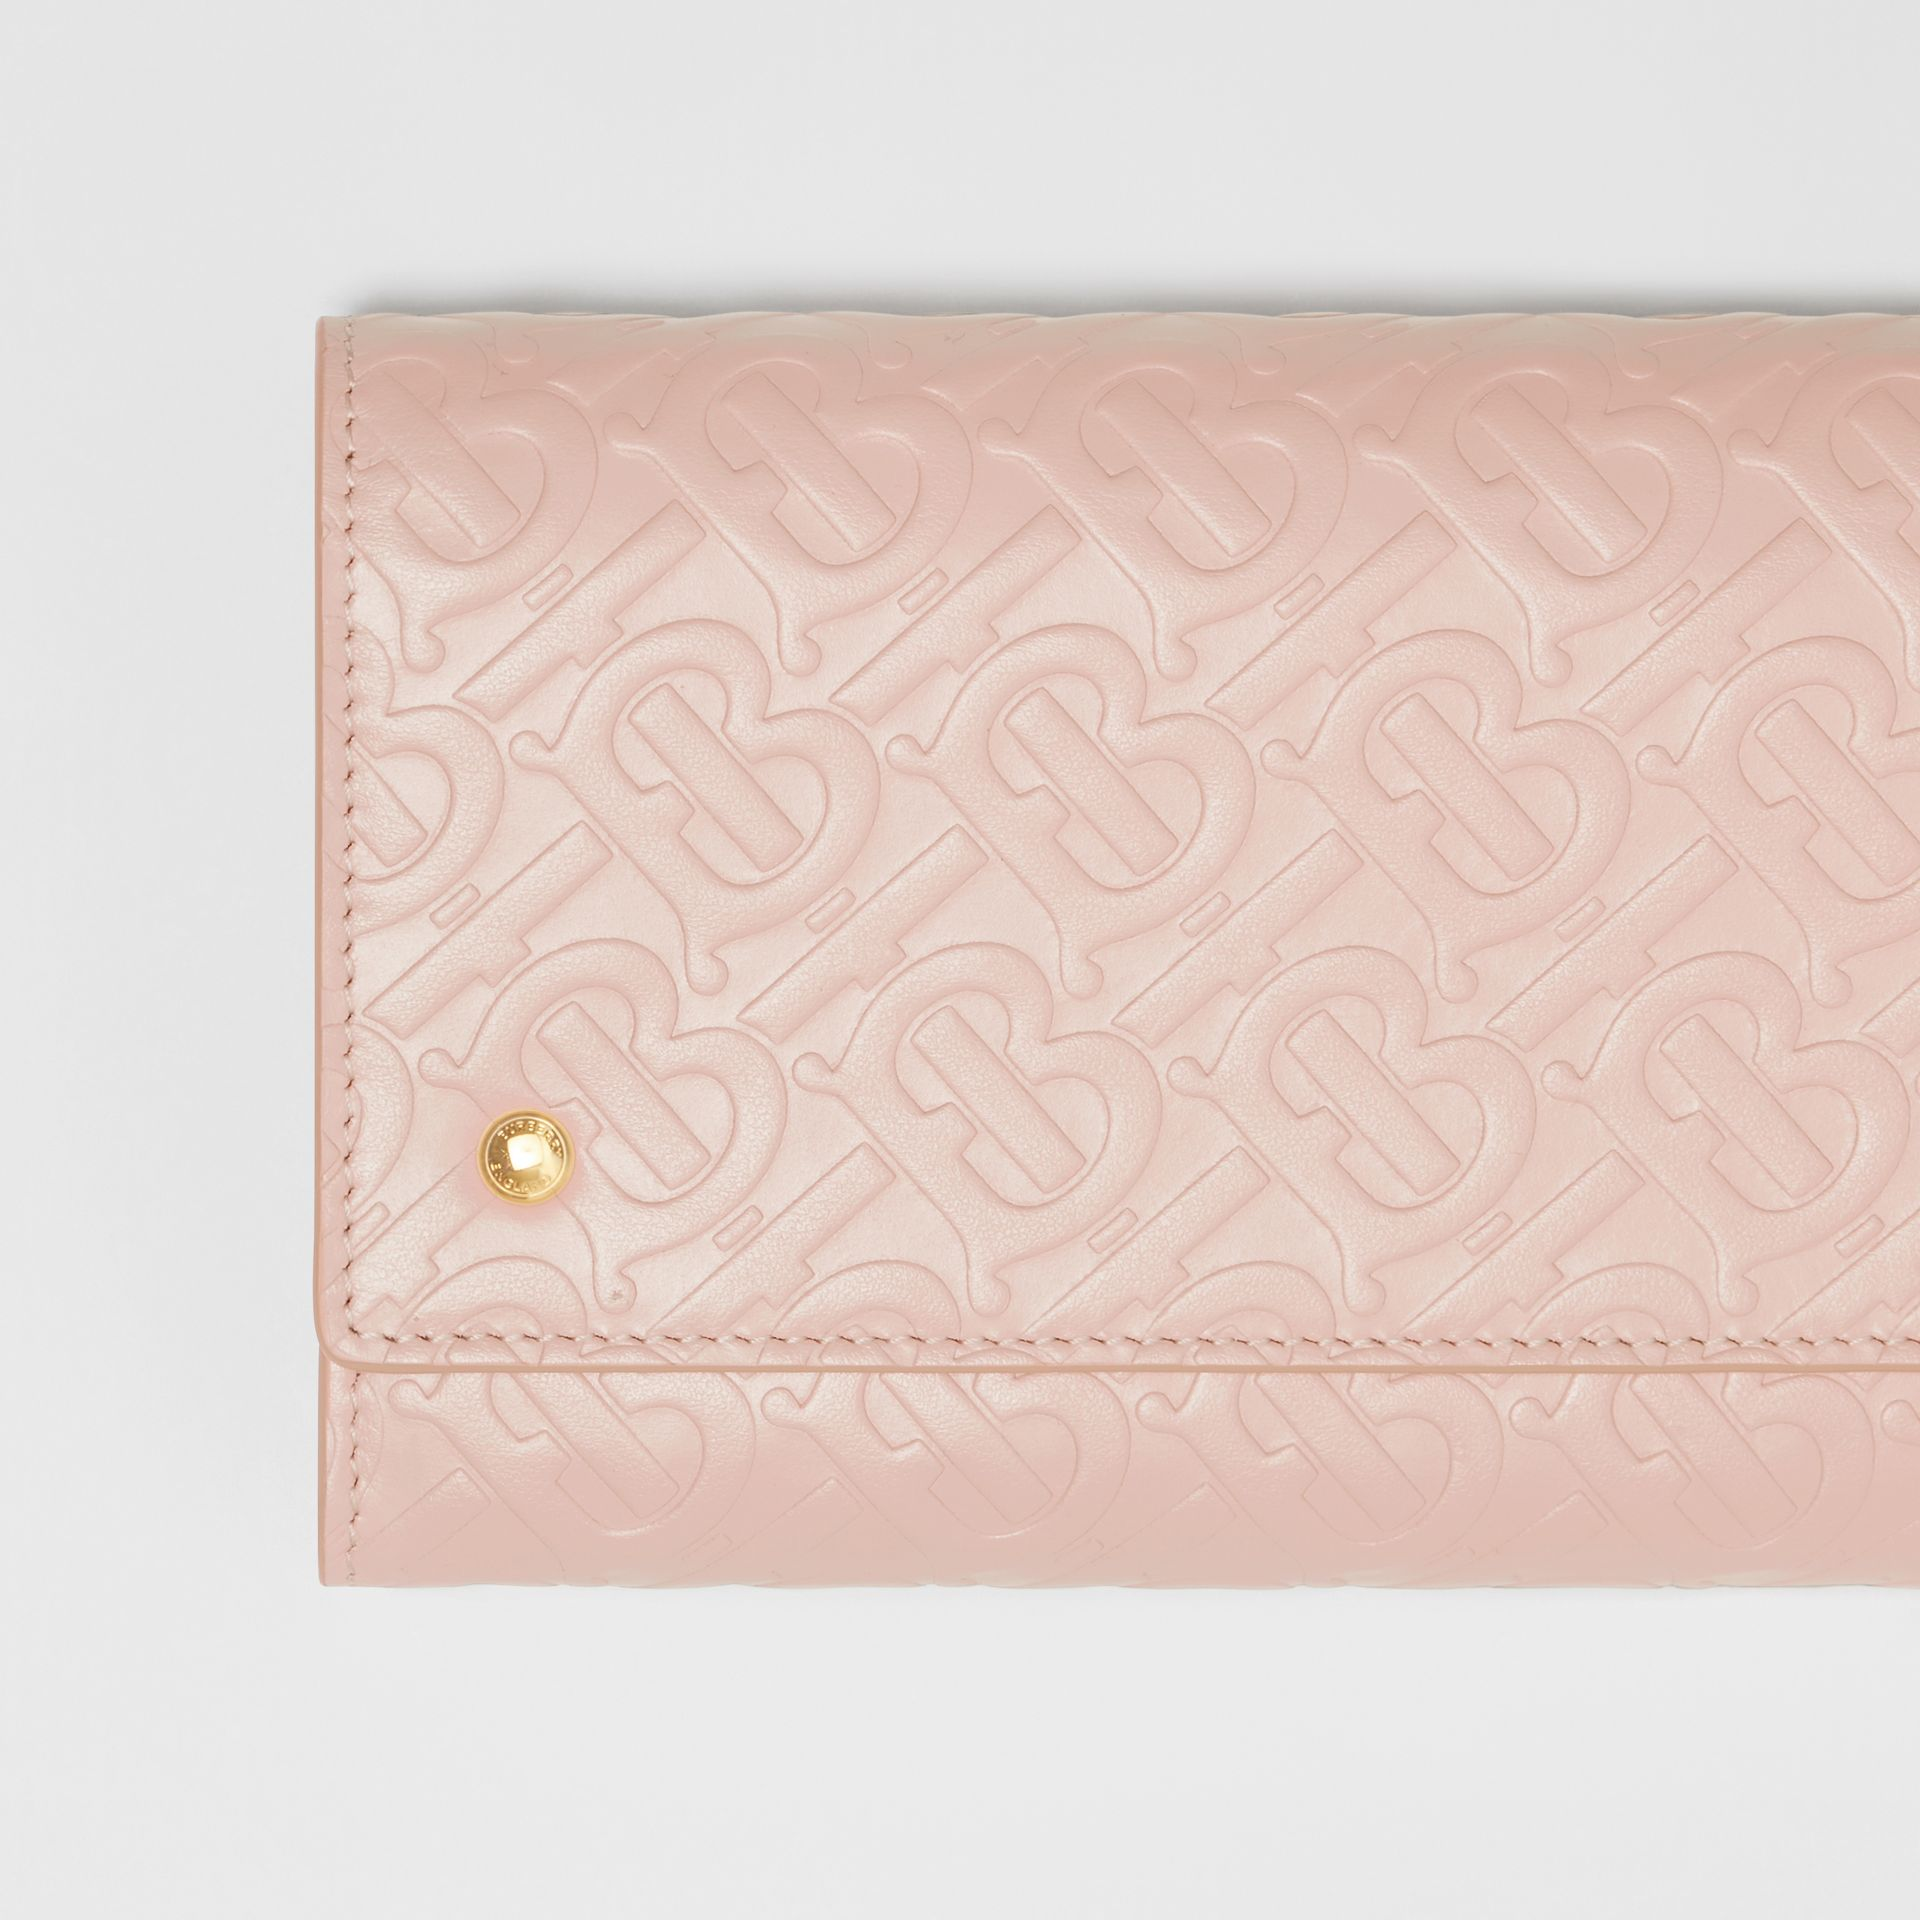 Monogram Leather Wallet with Detachable Strap in Rose Beige - Women | Burberry - gallery image 1